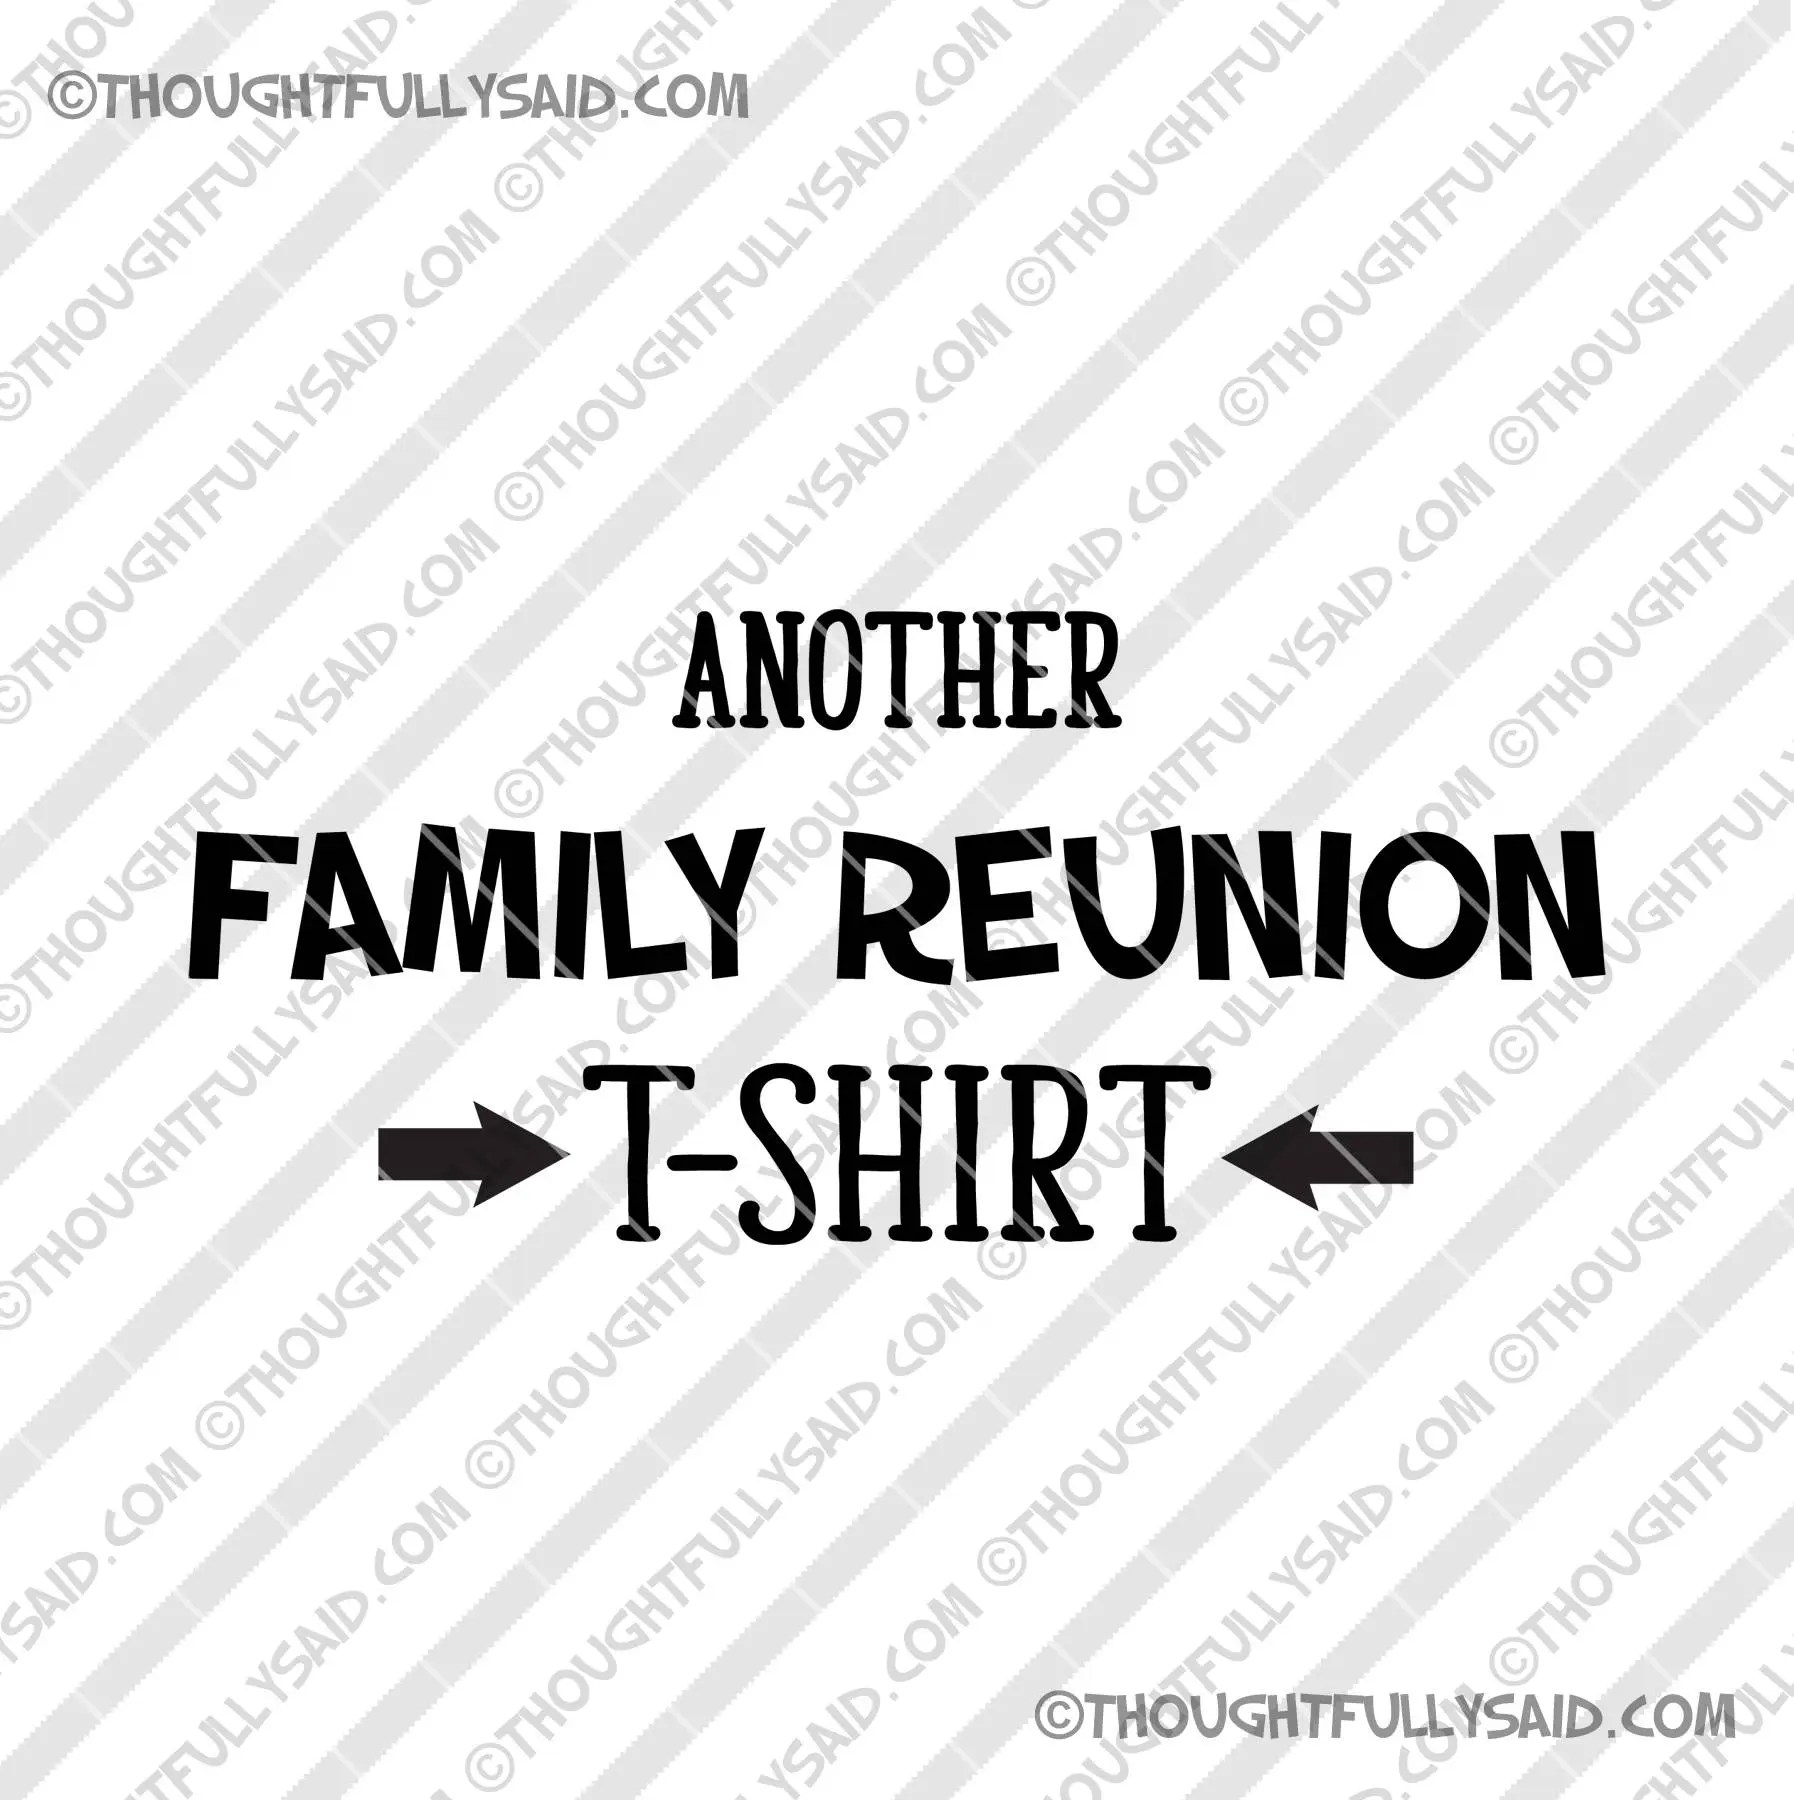 Another Family Reunion T-shirt SVG png dxf eps files for